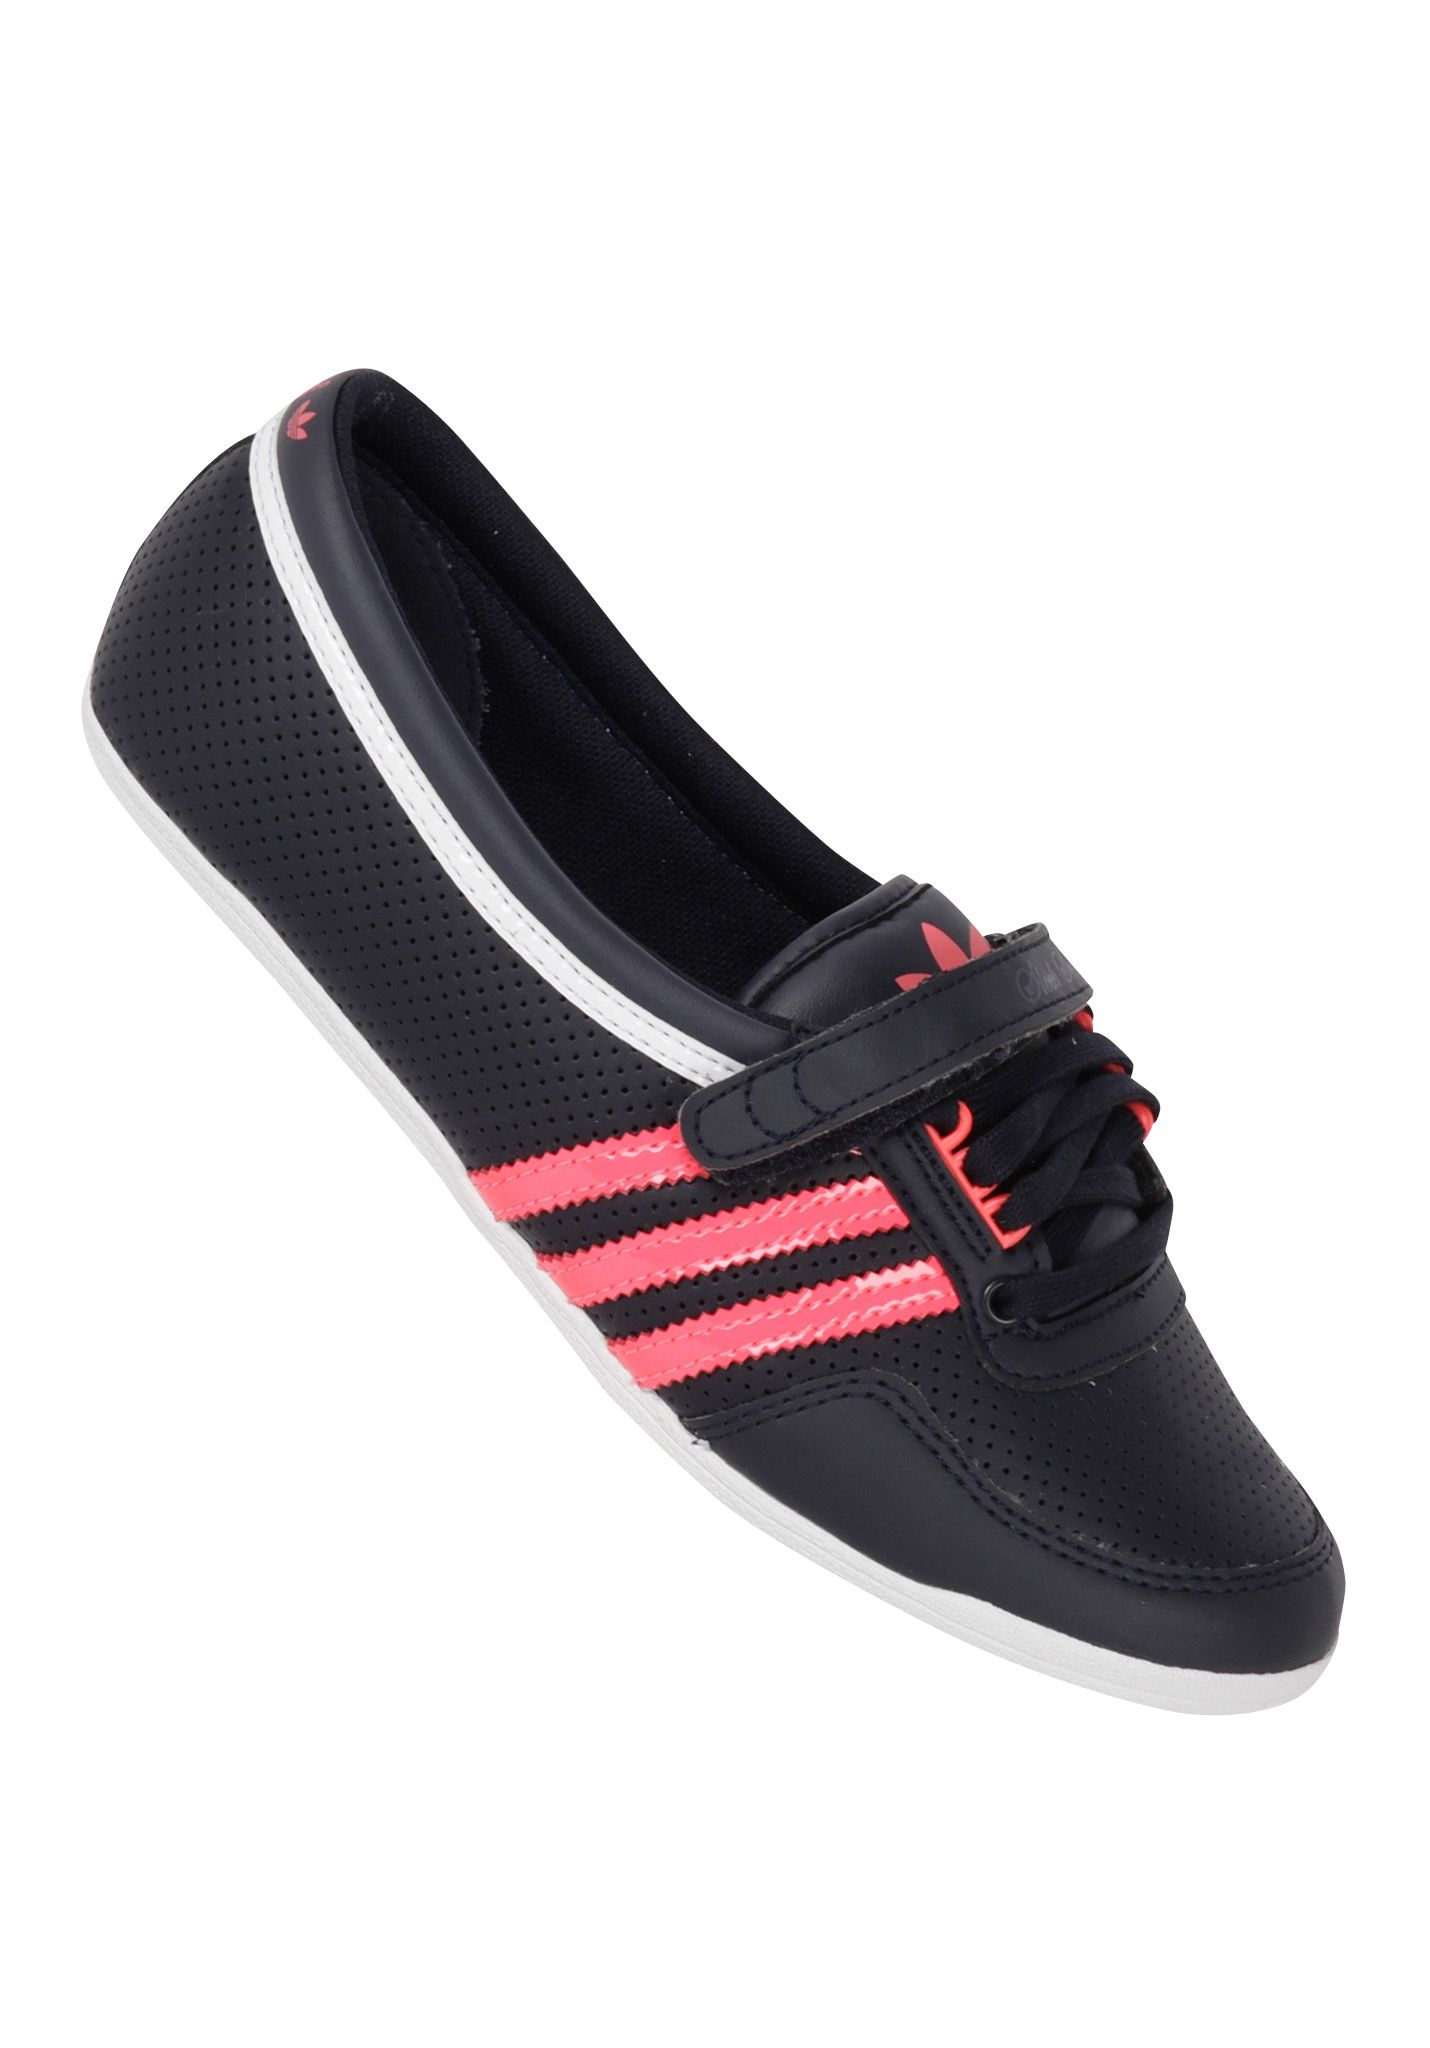 size 40 ae3f4 17af6 ADIDAS Concord Round - Ballerina Shoes for Women - Black - P